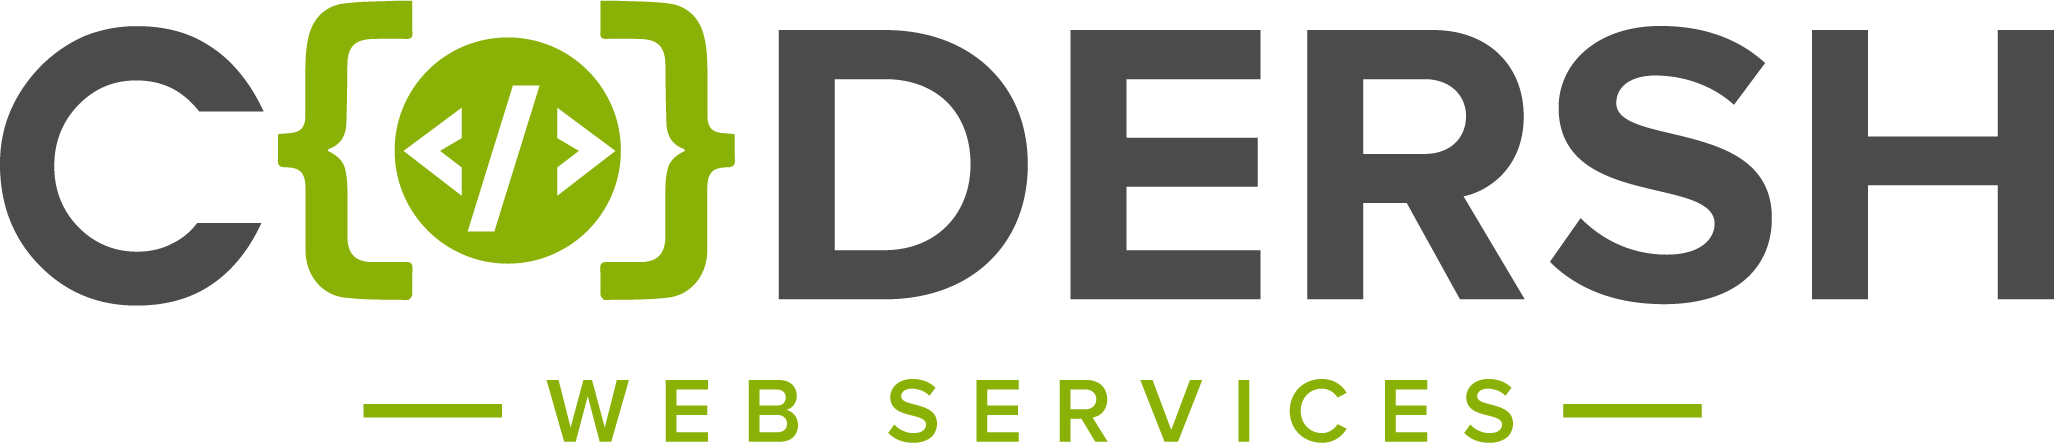 Codersh Web Services